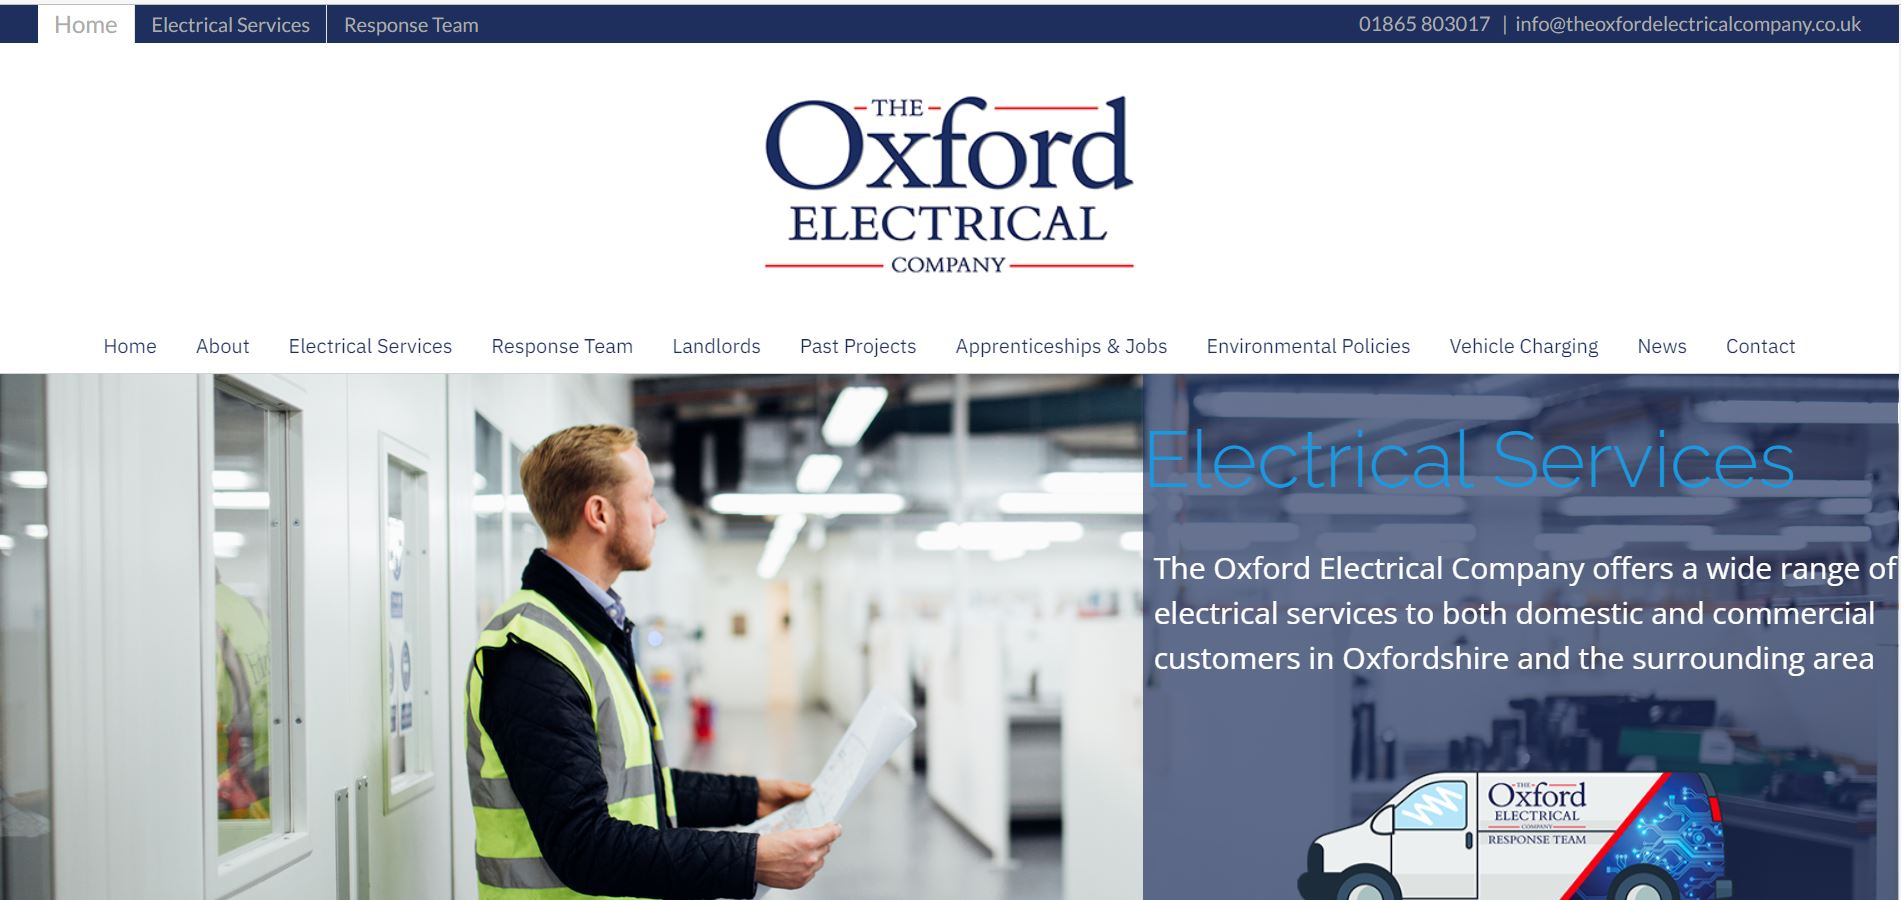 The oxford electrical